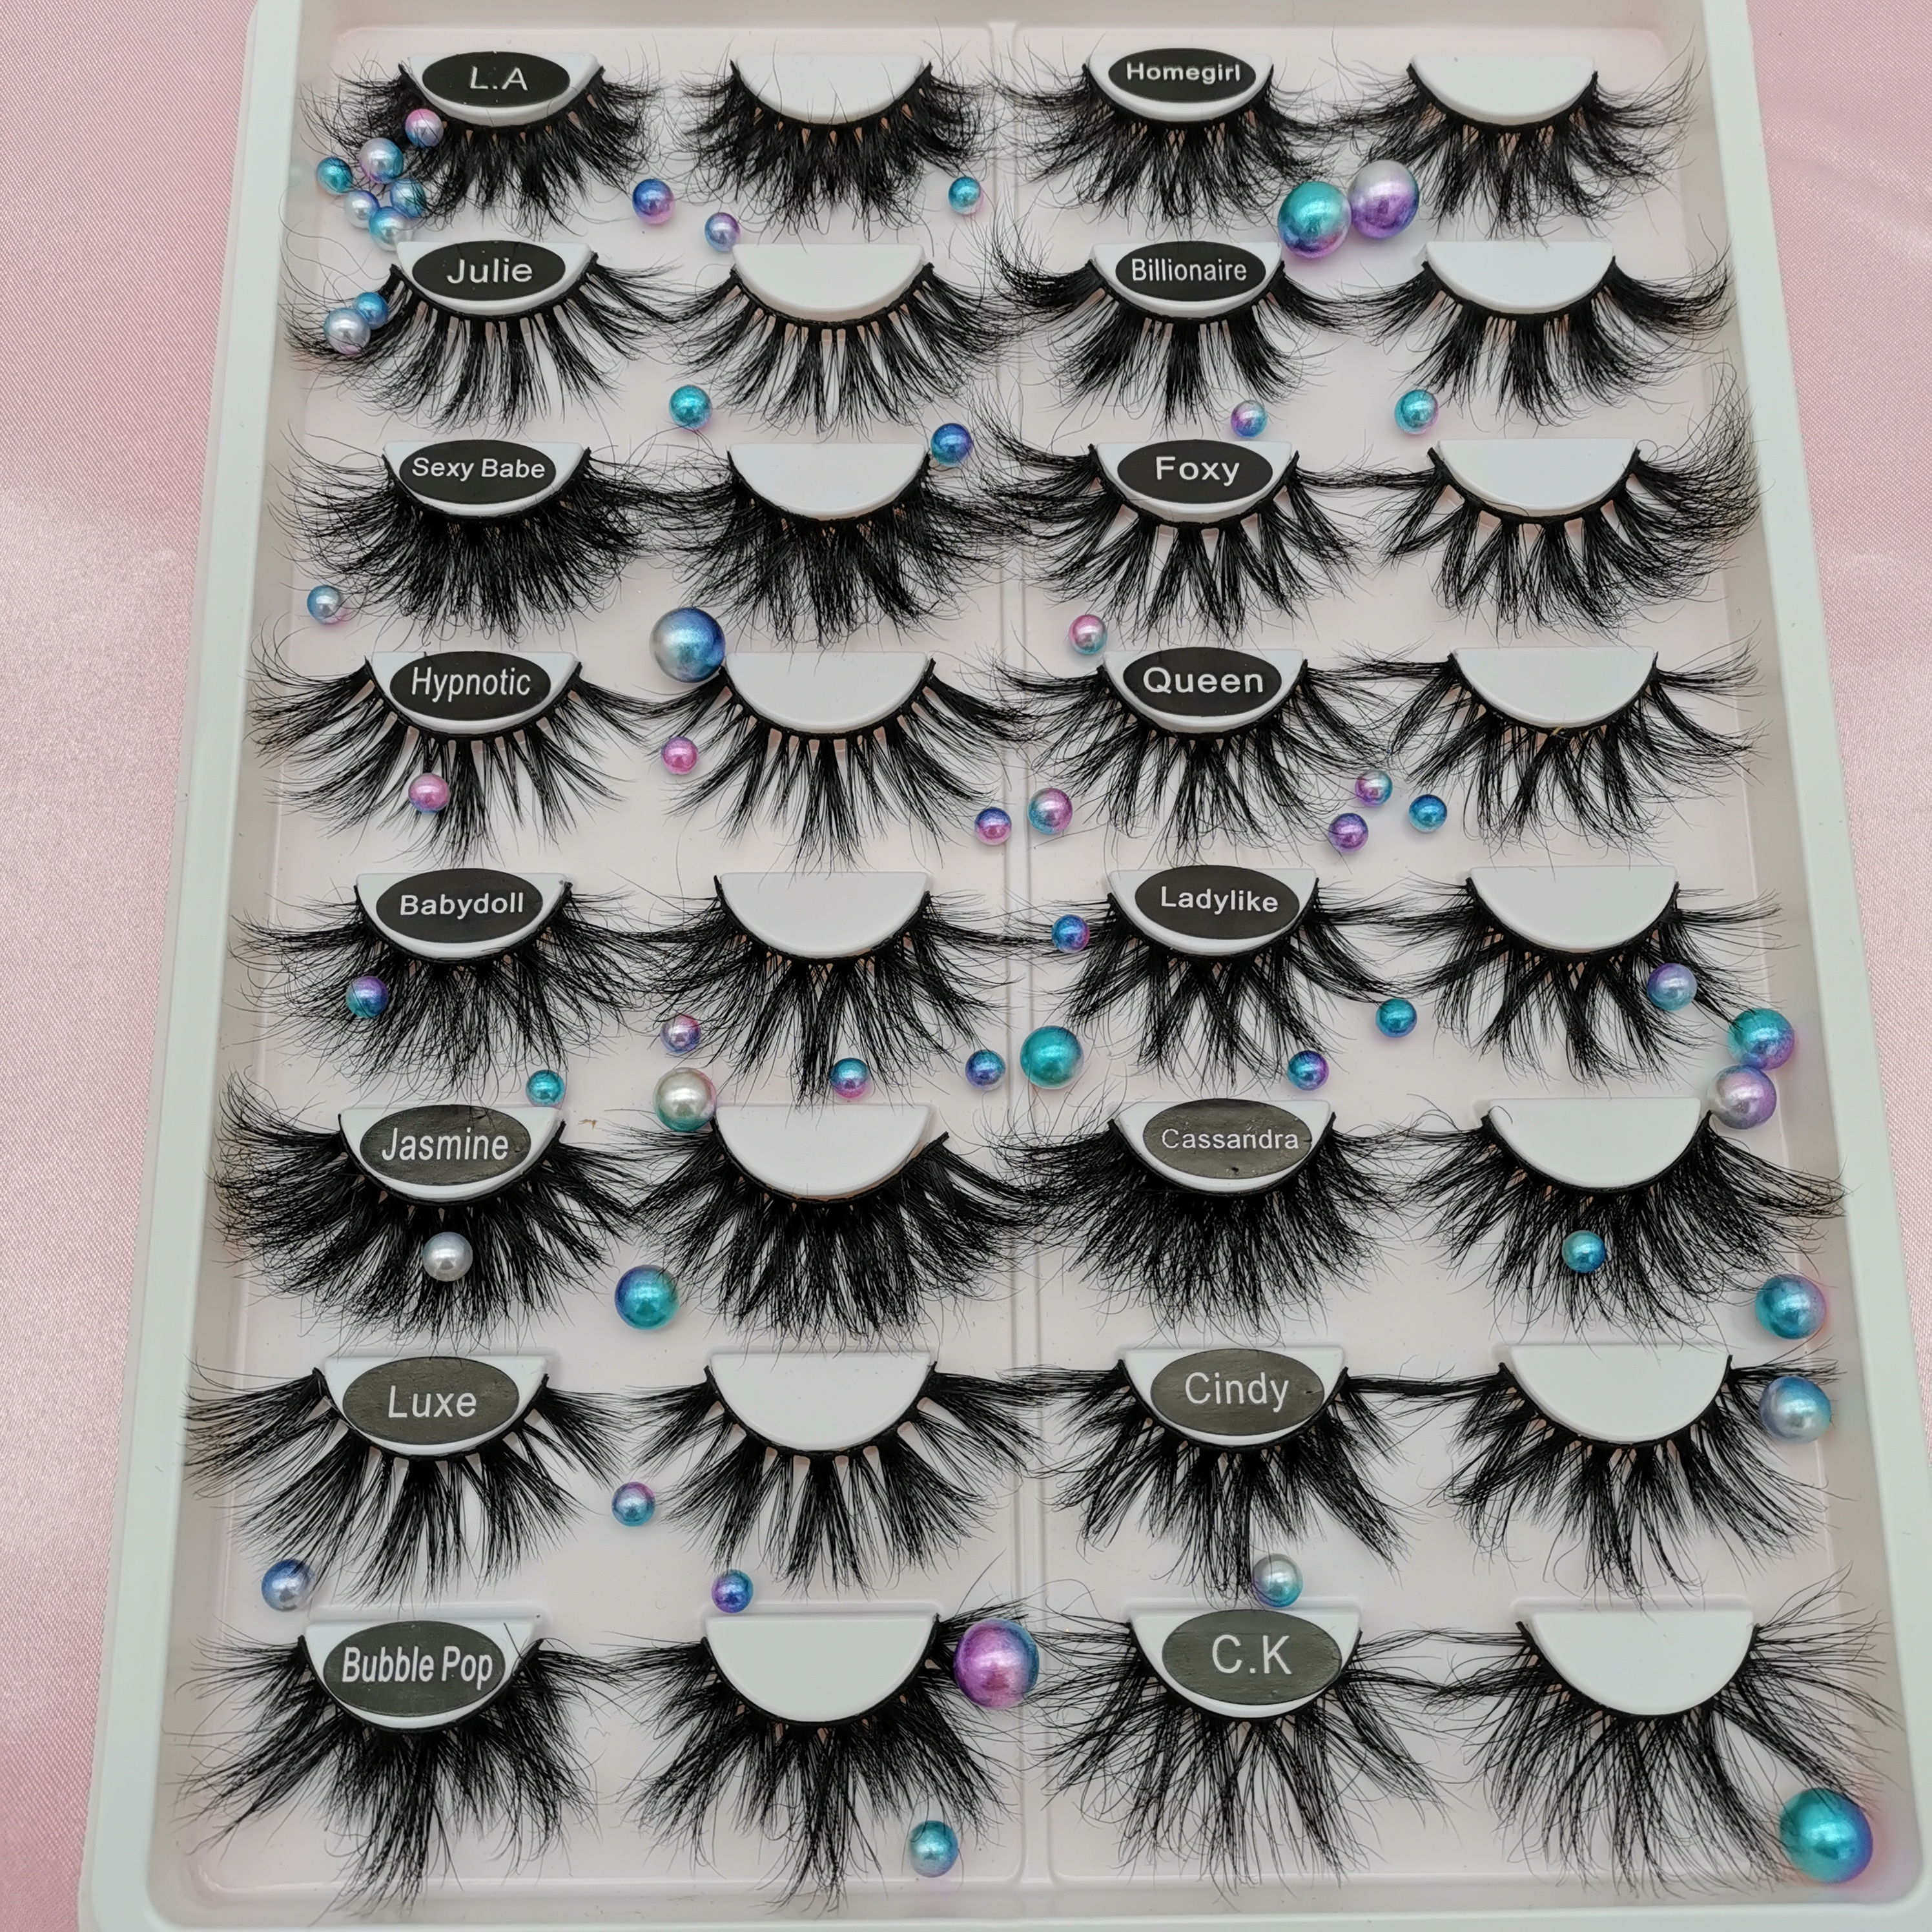 1Pair 25MM Dramatic Long Lashes 3D Mink Hair False Eyelashes Thick Criss-cross Wispies Fluffies Eye Lash Extension Makeup Tools